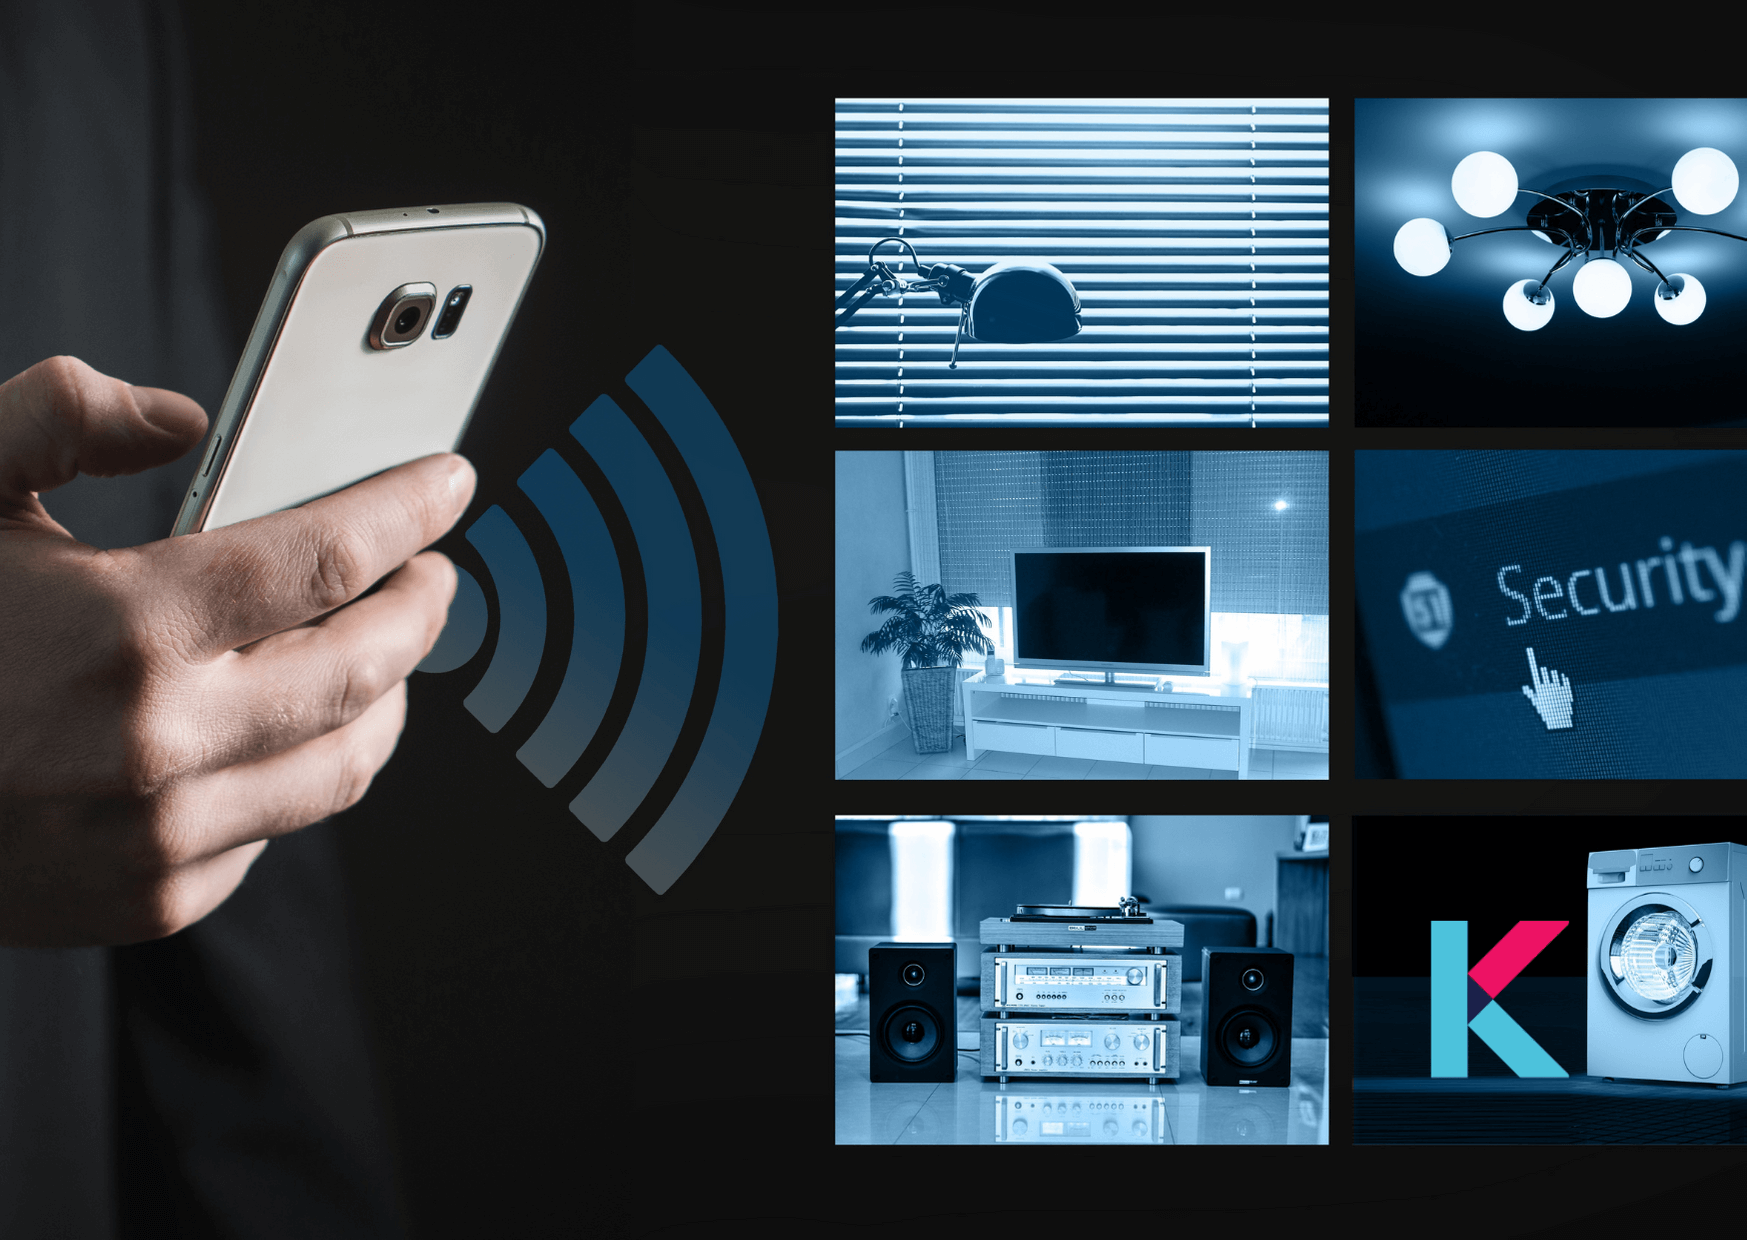 Smart Home devices works